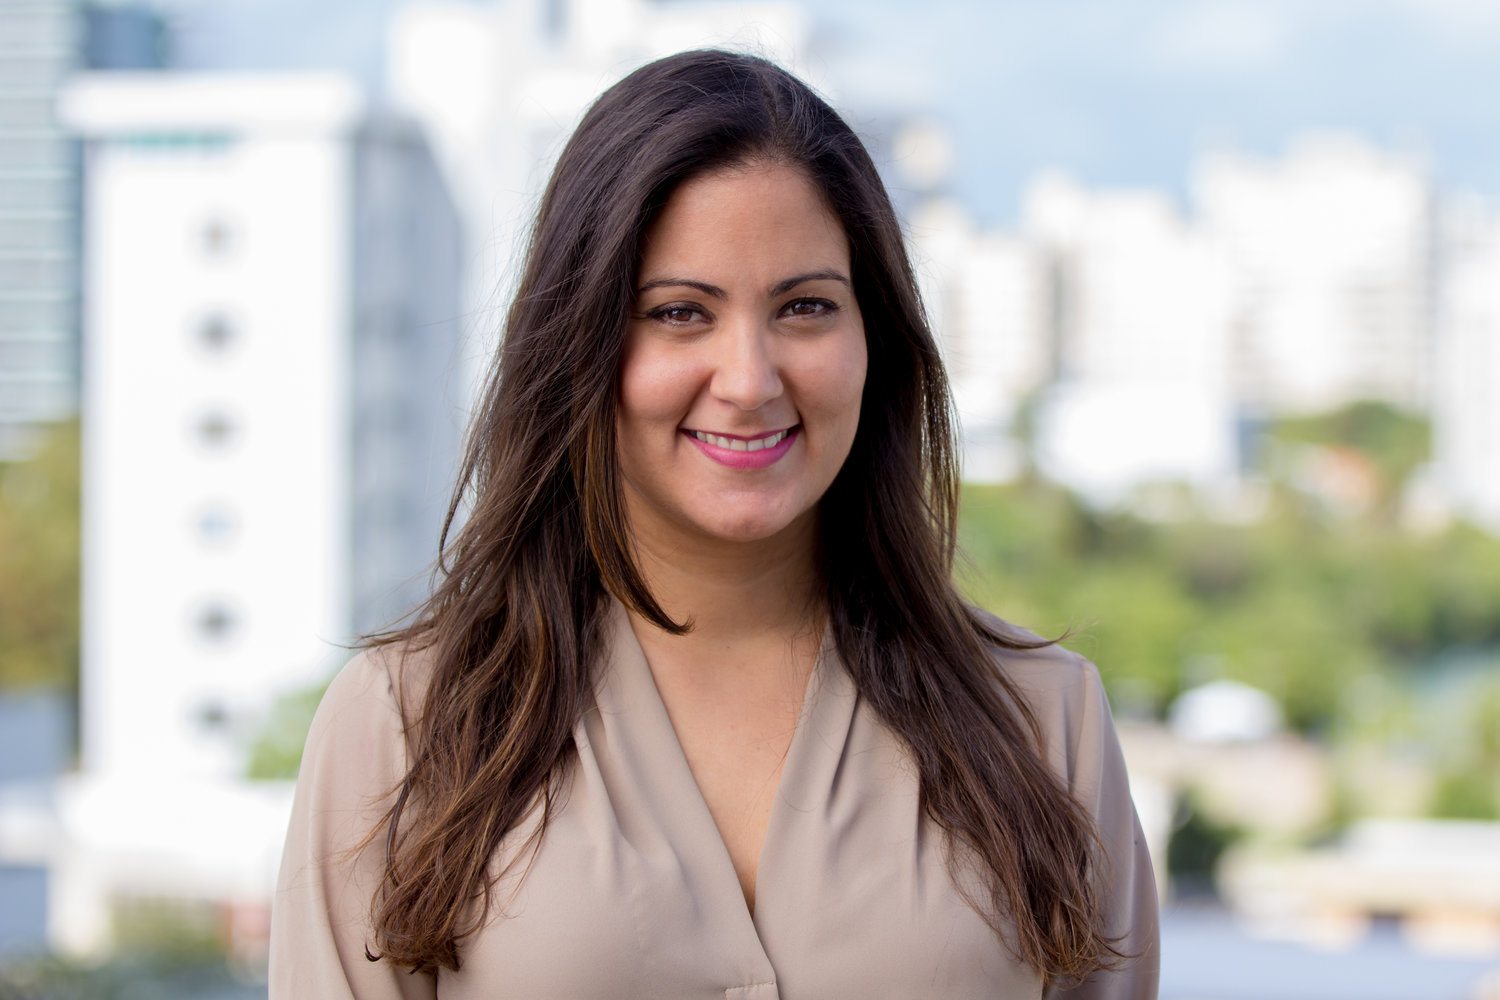 Wilitza Vázquez, Director of Business